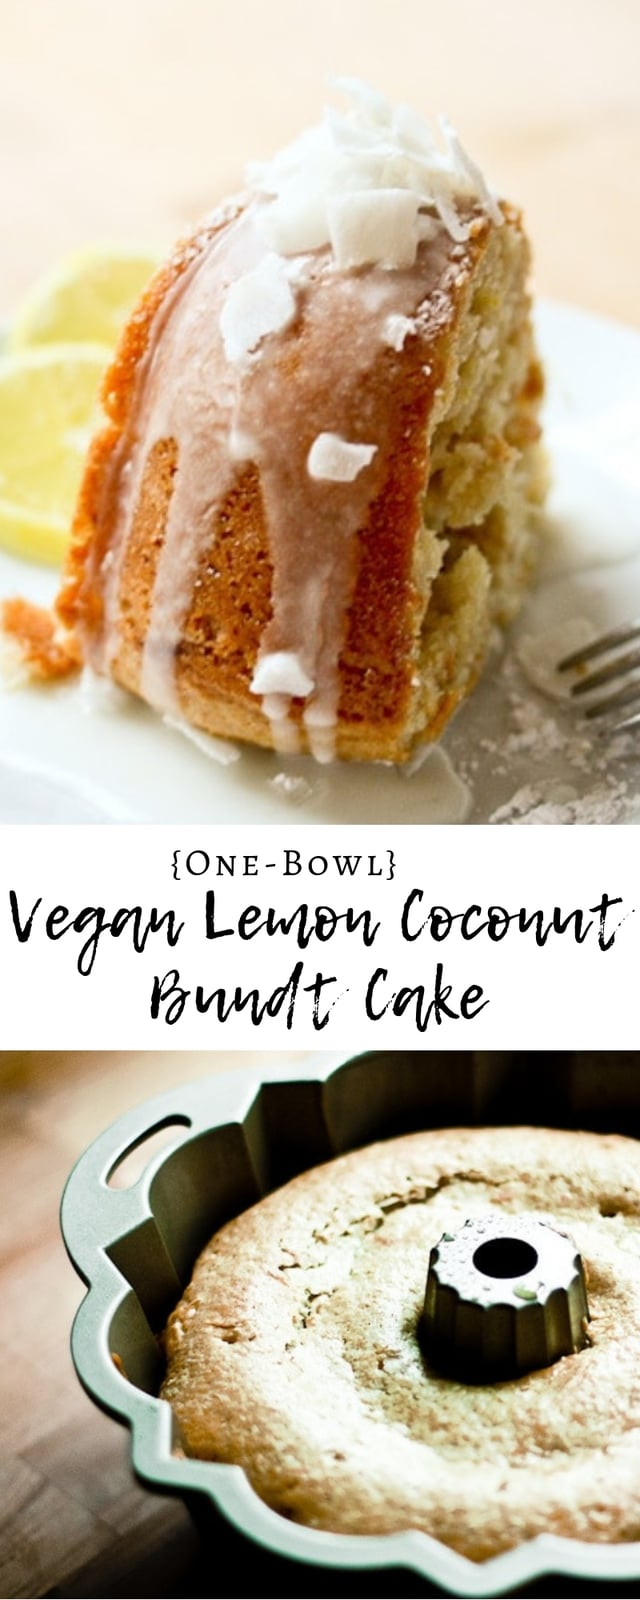 One Bowl Vegan Meyer Lemon Coconut Bundt Cake...SO easy and delicious! Make this in one bowl, and pour and bake! #vegan #bundt #Bundtcake #lemoncake #vegancake www.feastingathome.com